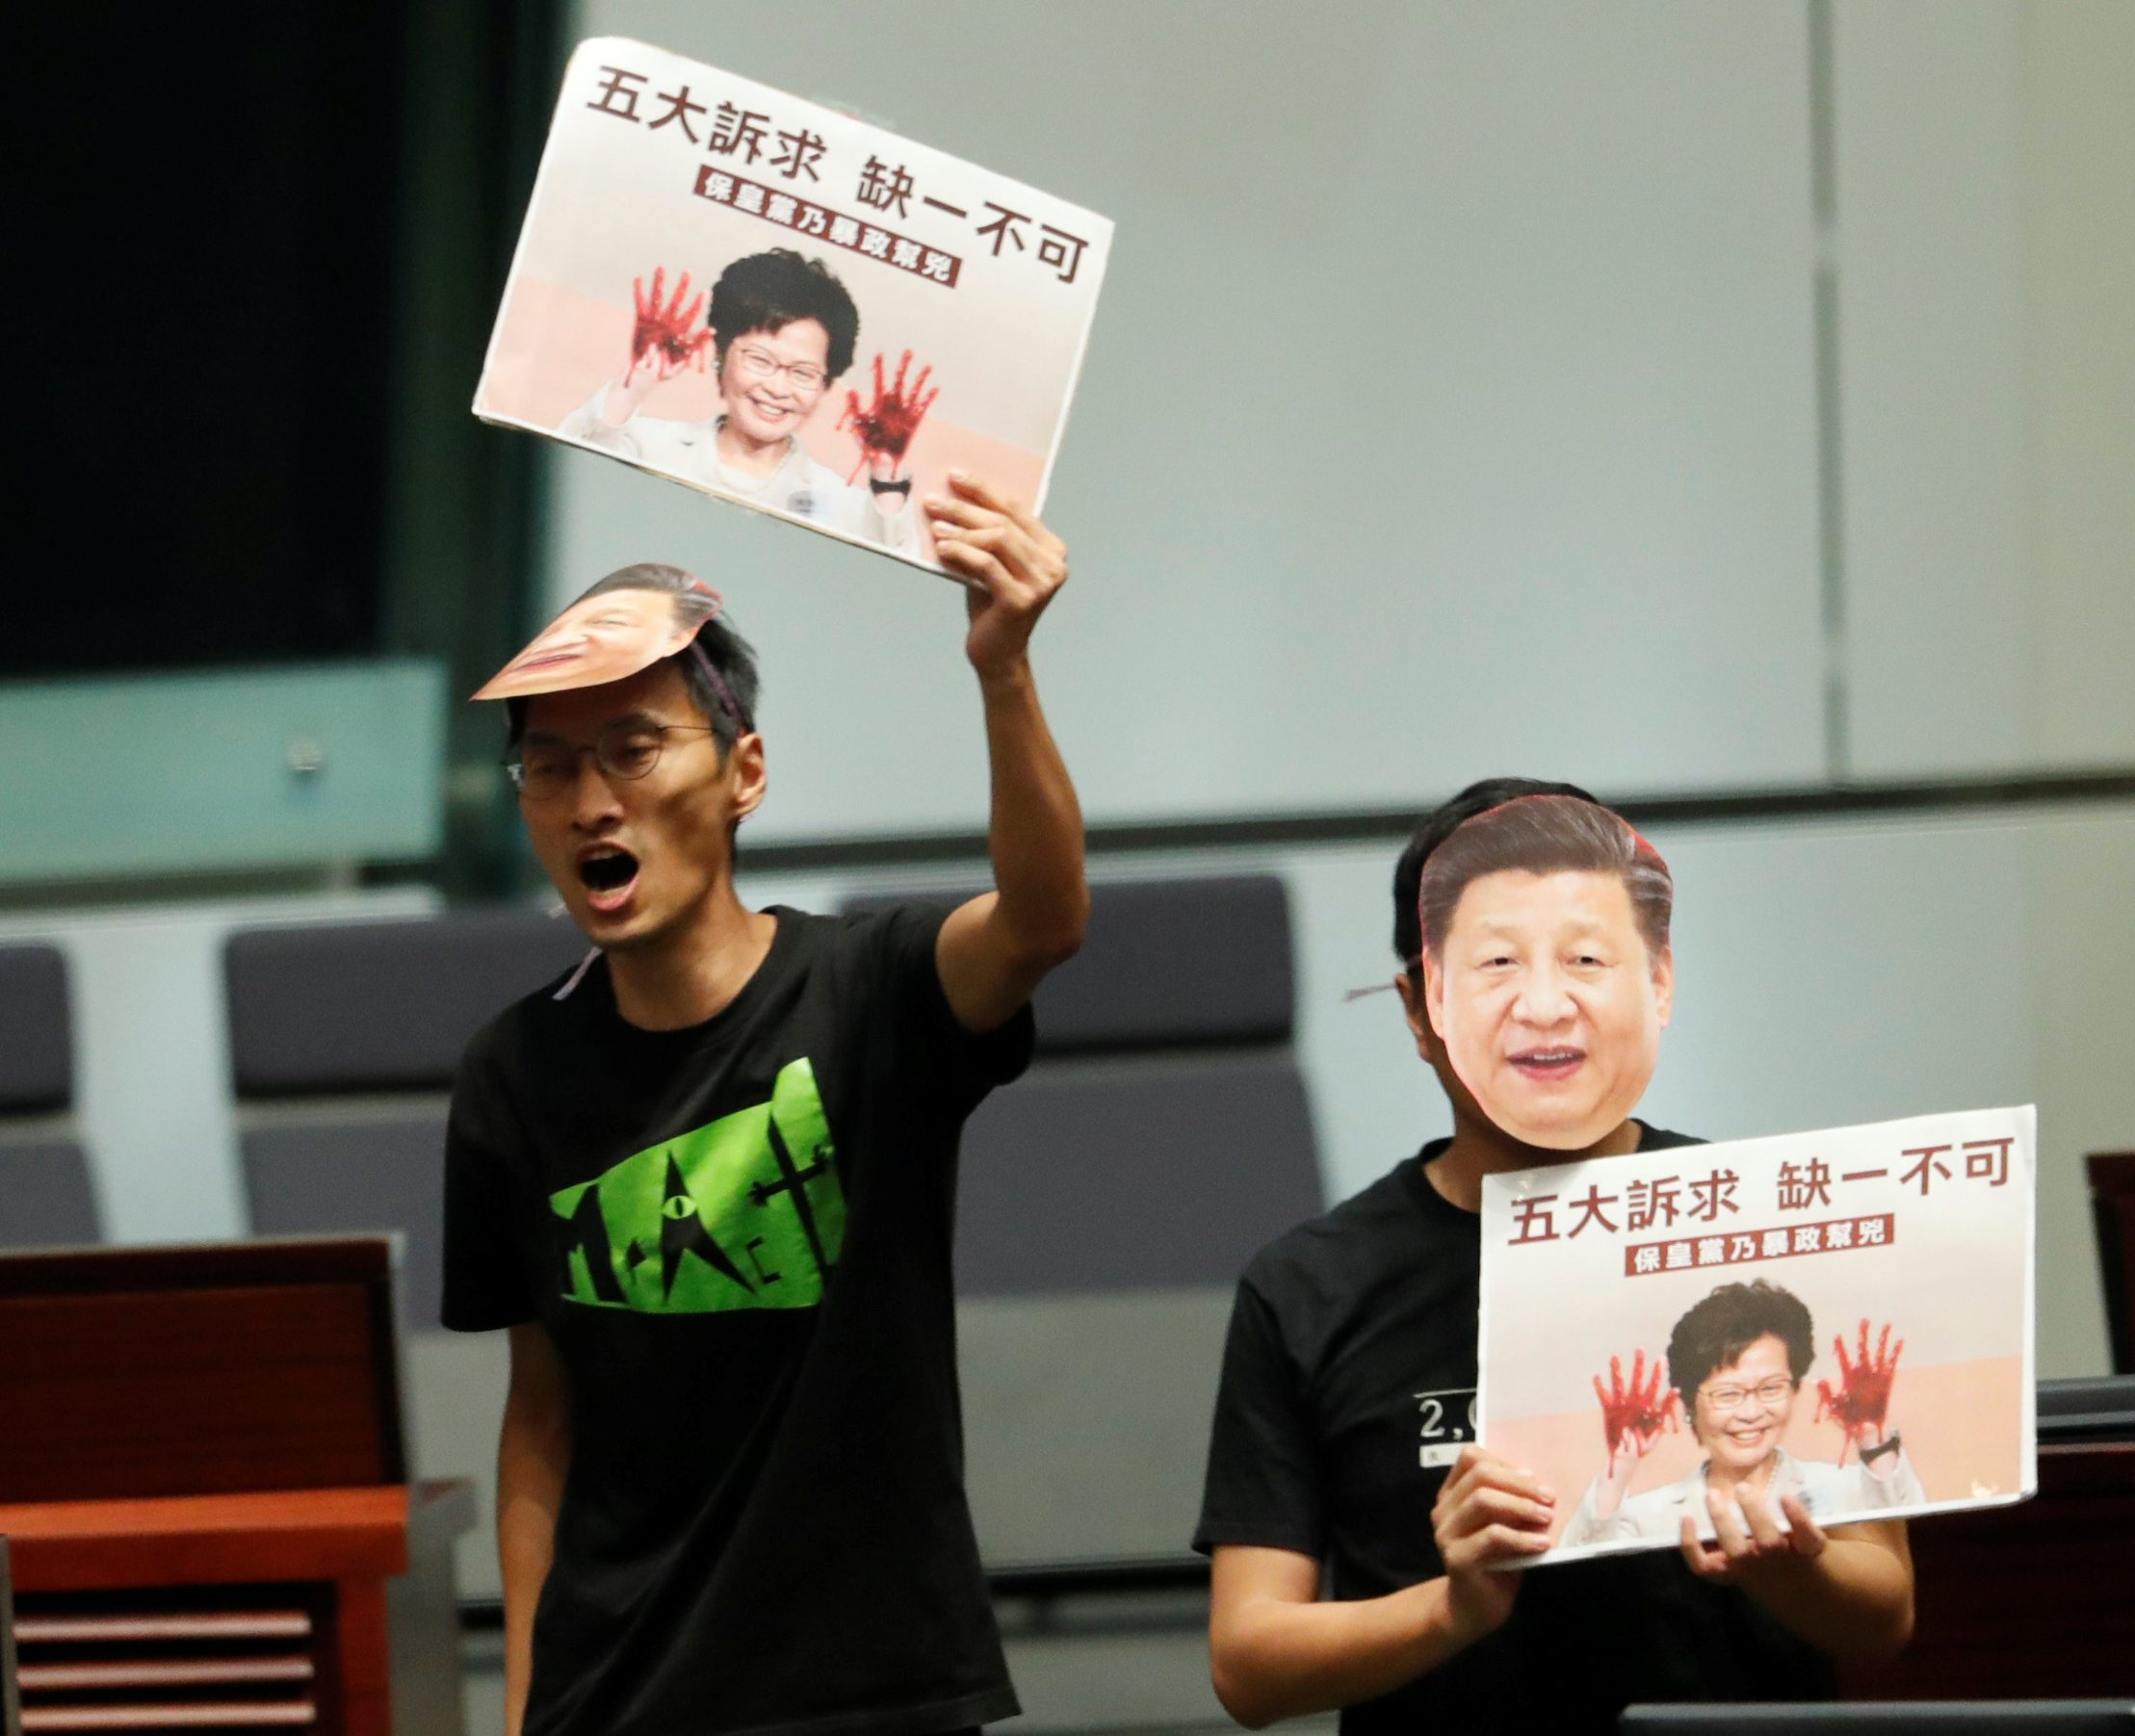 Lawmakers jeer as Hong Kong Chief Executive Carrie Lam attempts to deliver her annual policy address, at the Legislative Council in Hong Kong, China, October 16, 2019. REUTERS/Kim Kyung-Hoon